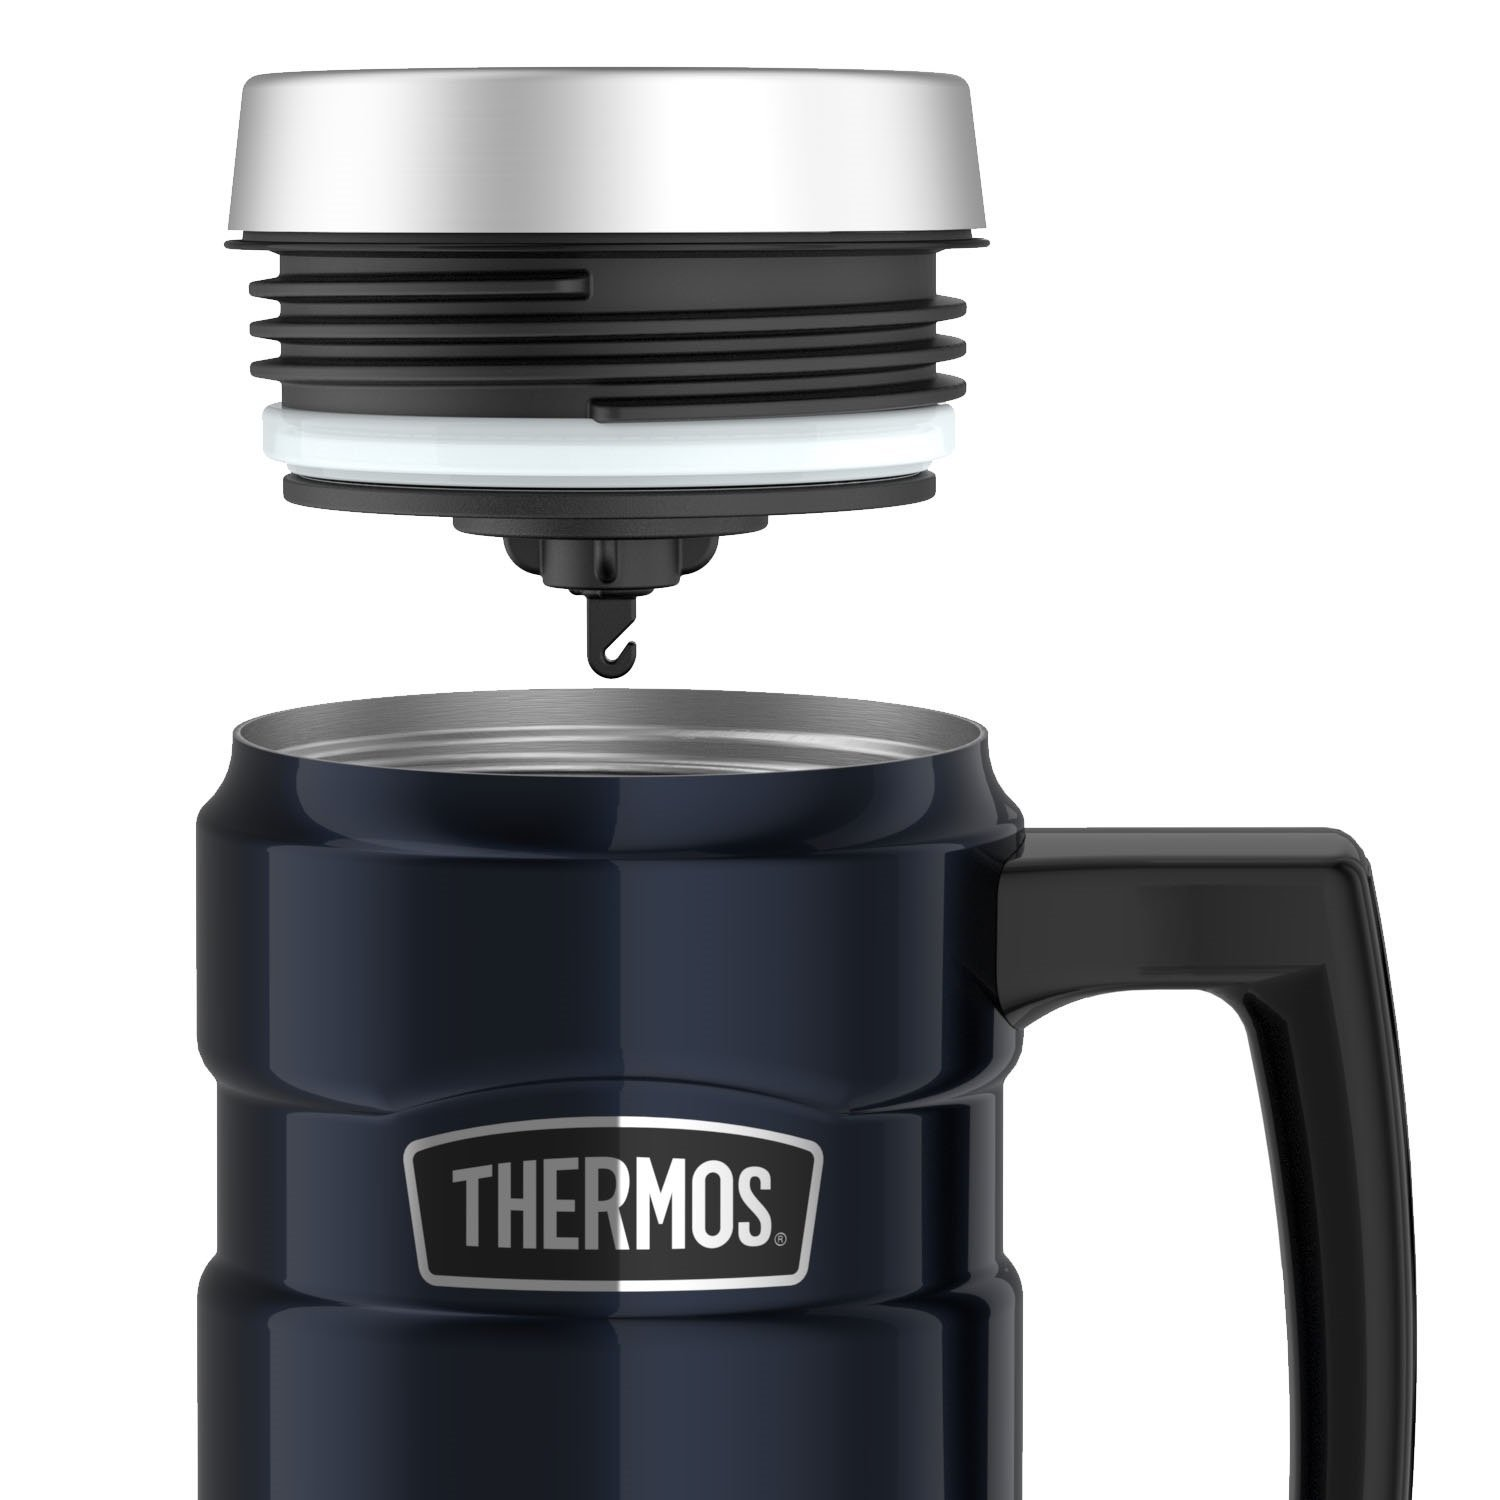 Thermos Stainless King 16 Ounce Travel Mug with Handle, Midnight Blue by Thermos (Image #6)